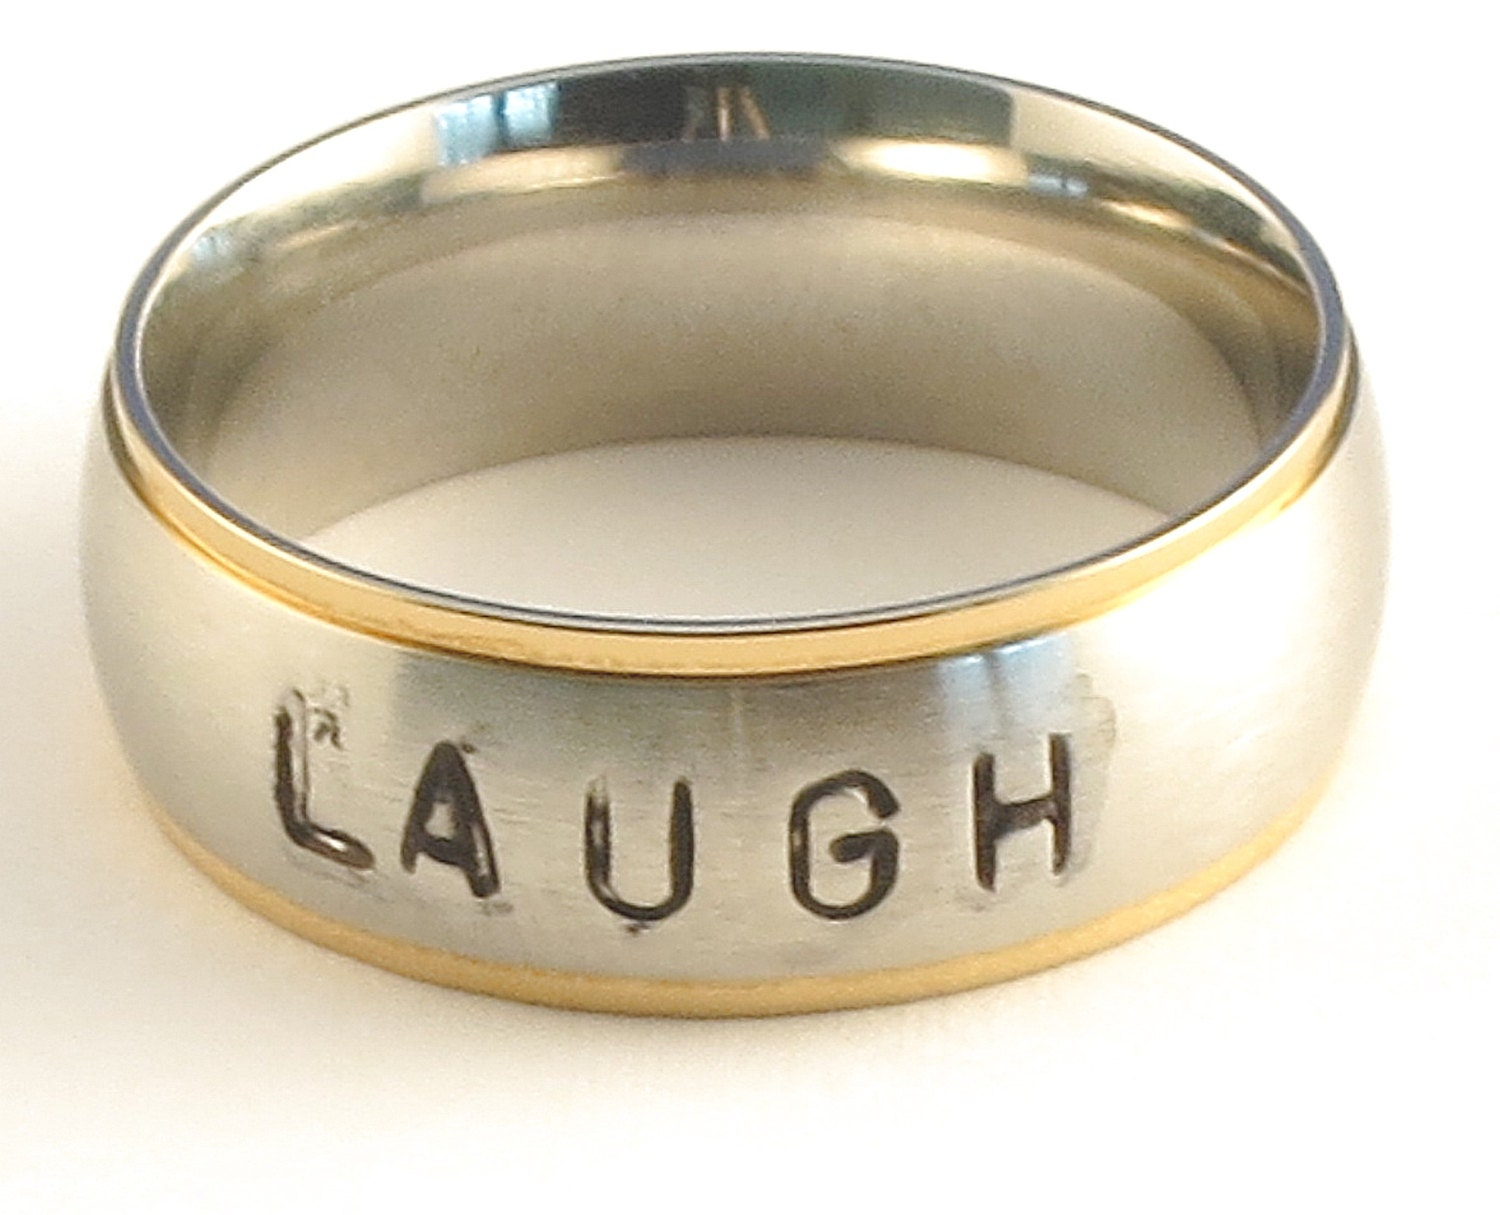 LAUGH with Black Font - Personalized Hand Stamped Customized Stainless Steel Gold Tone Edge Comfort Fit Name Ring 6mm - Ring Size 3-14